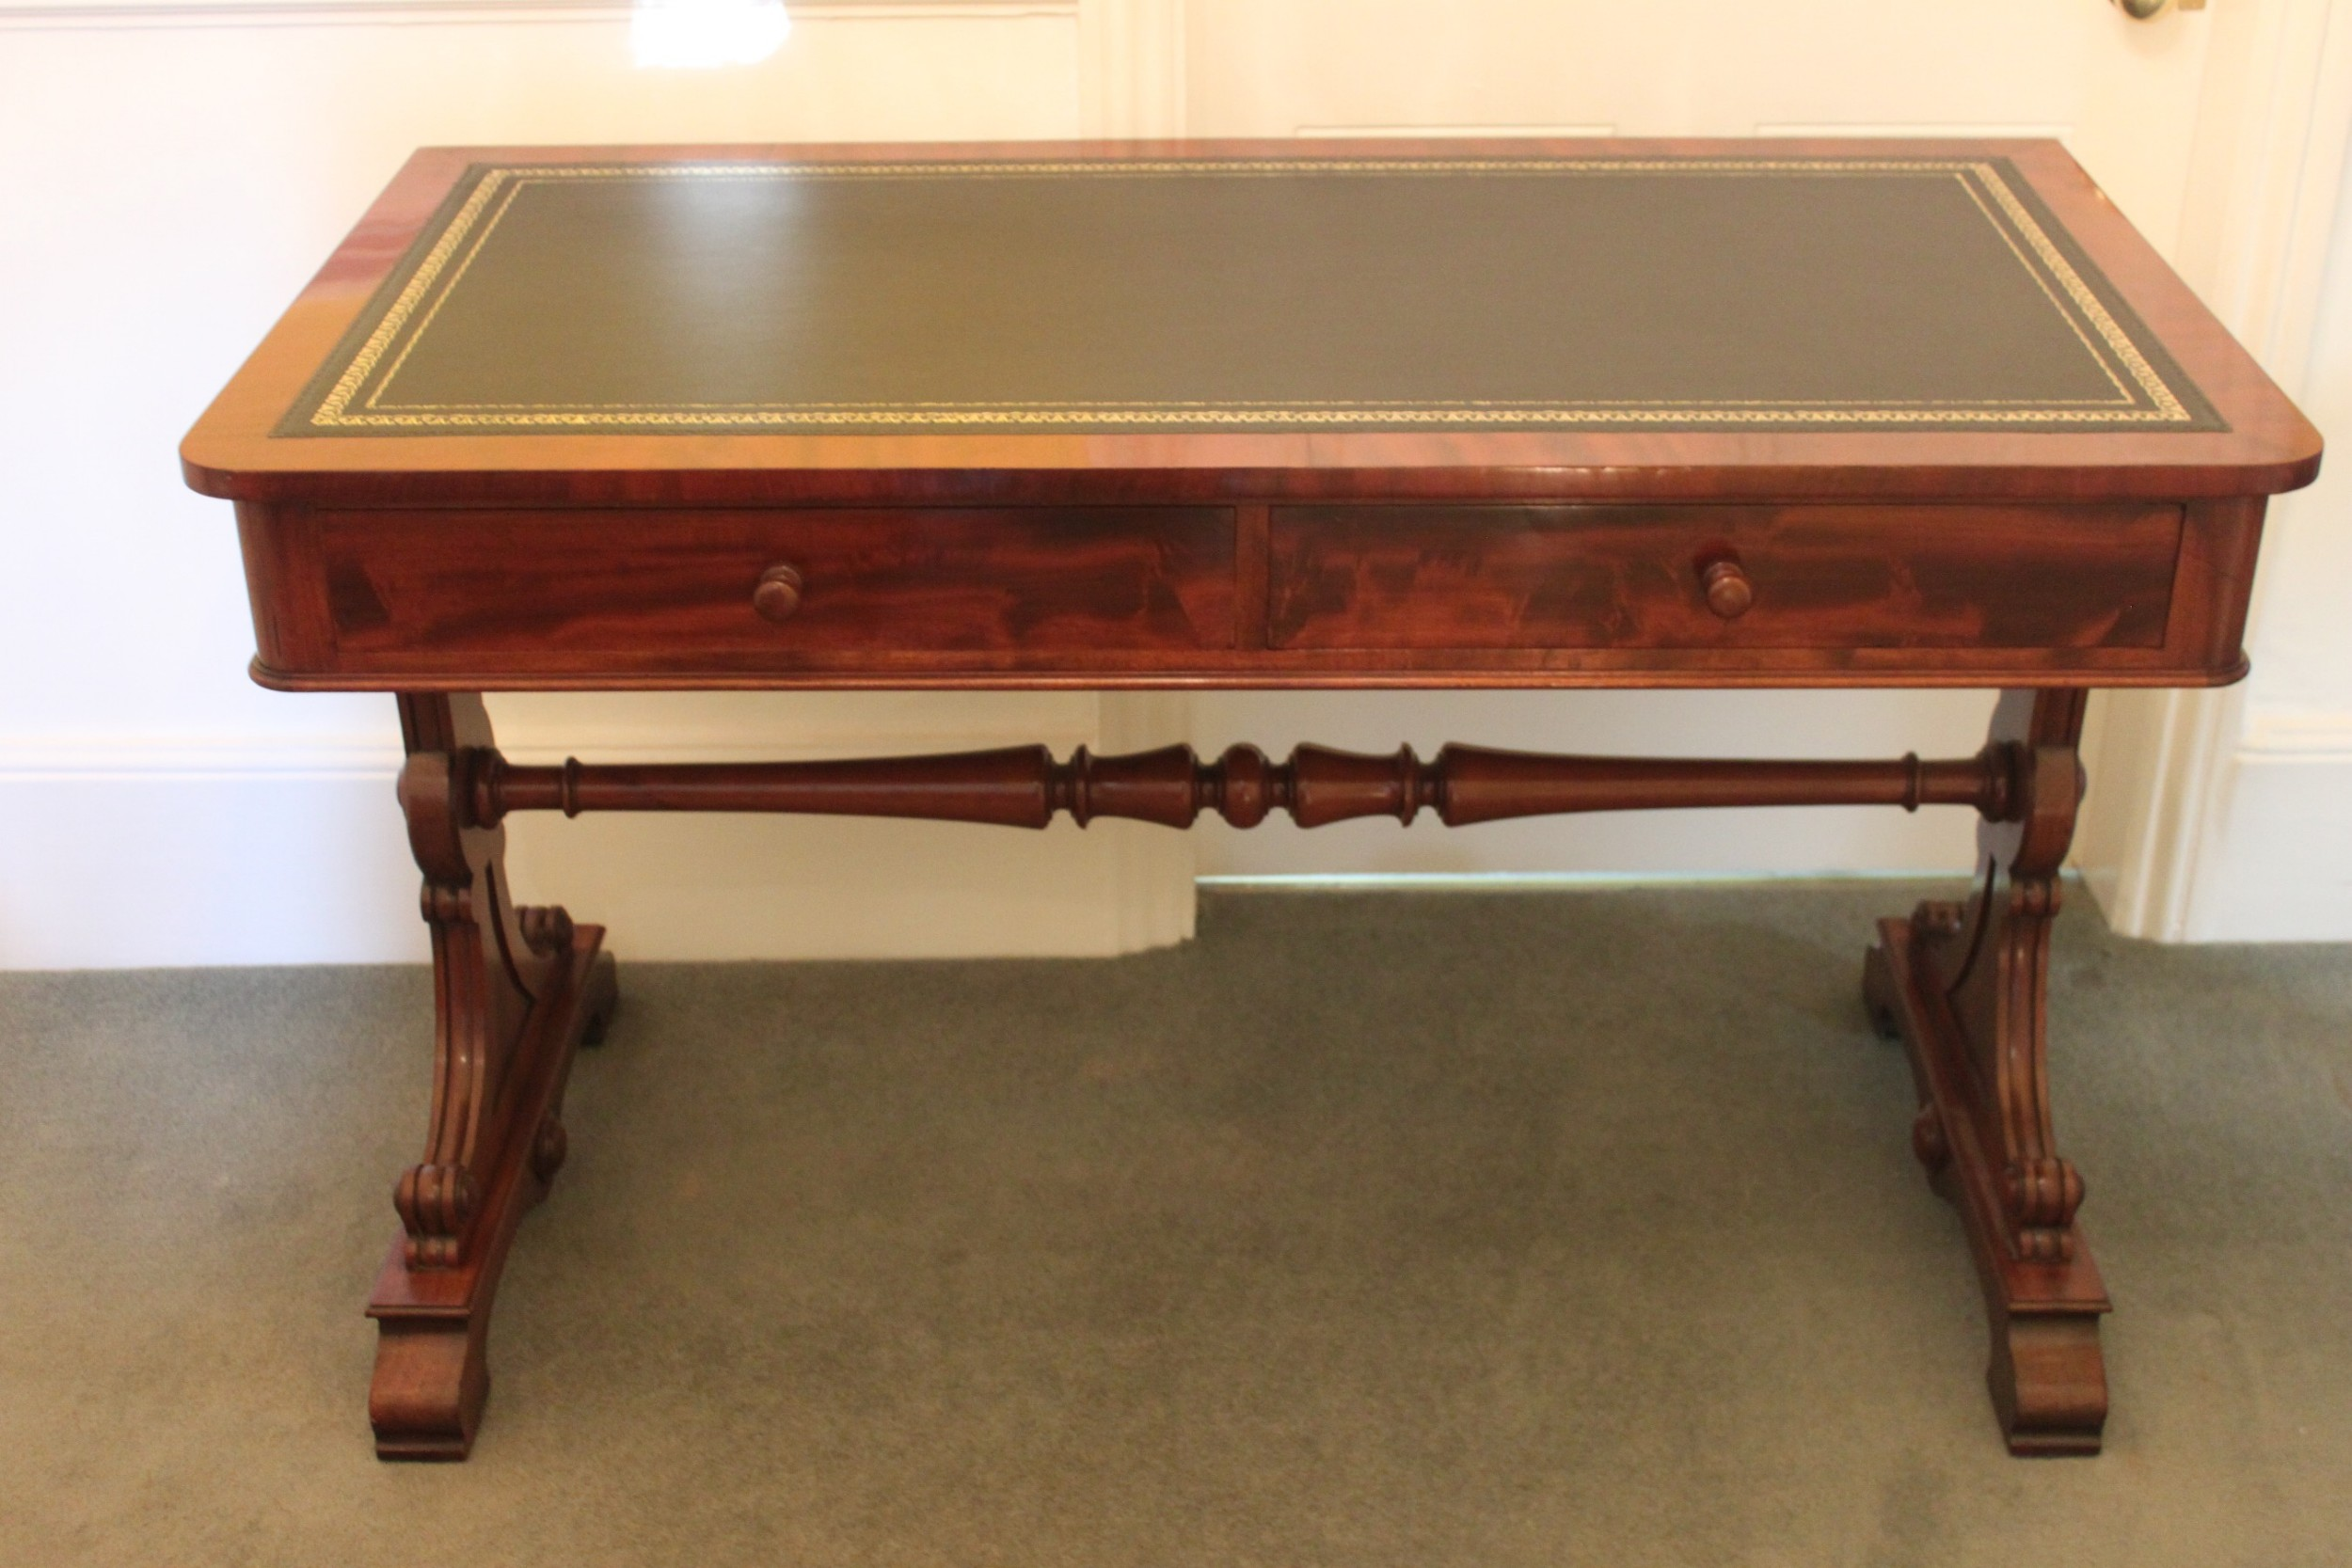 an early 19th century mahogany two drawer writing or library table by gillows of lancaster